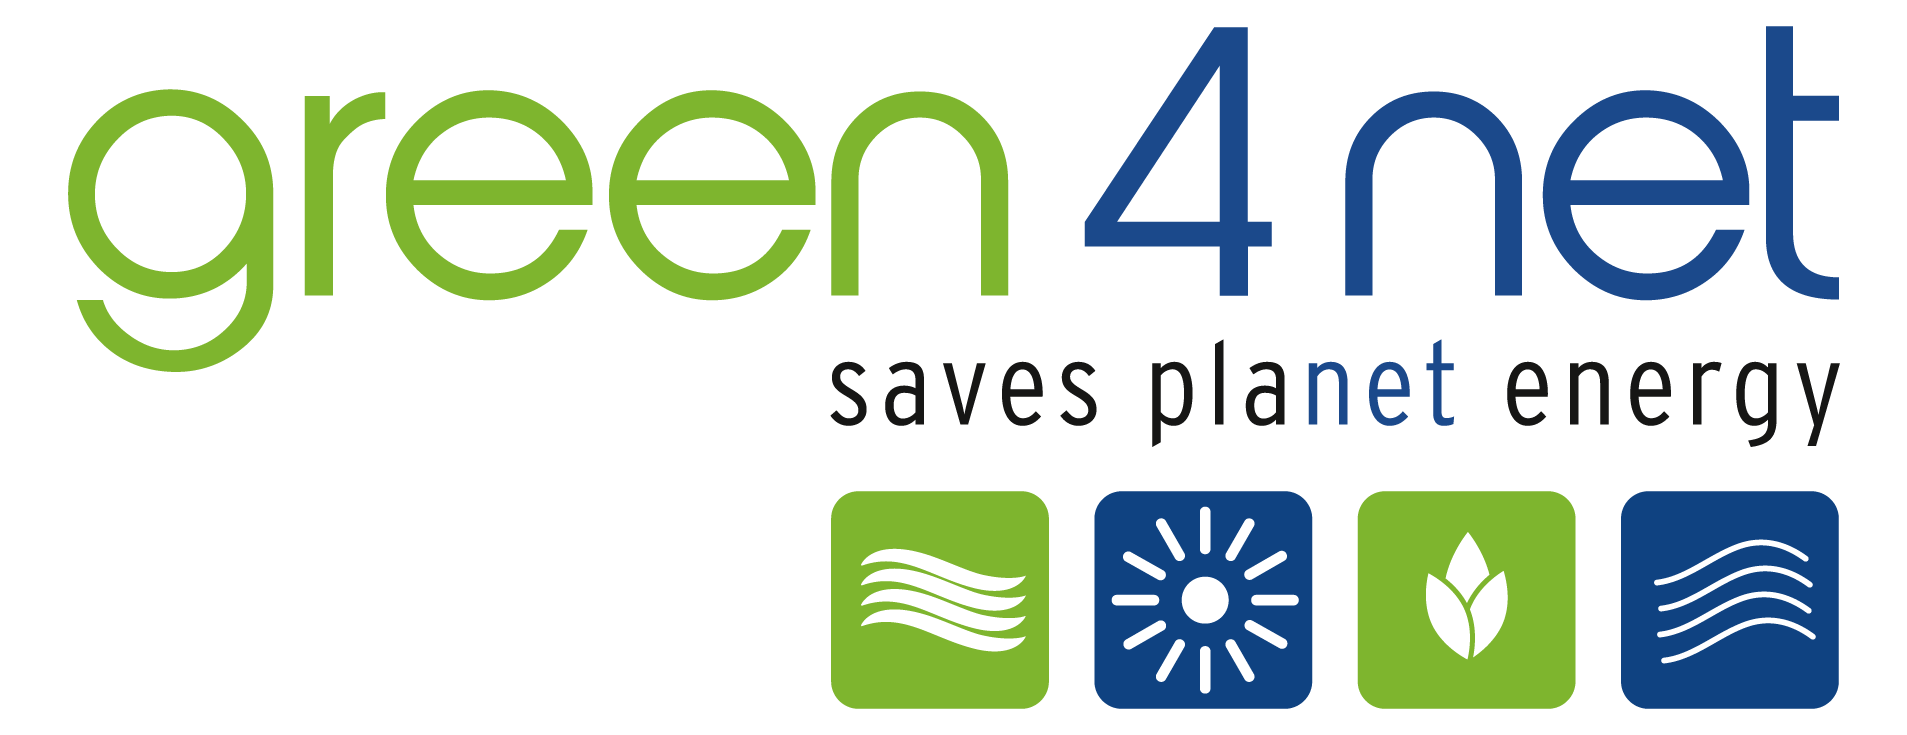 green4net - saves planet energy